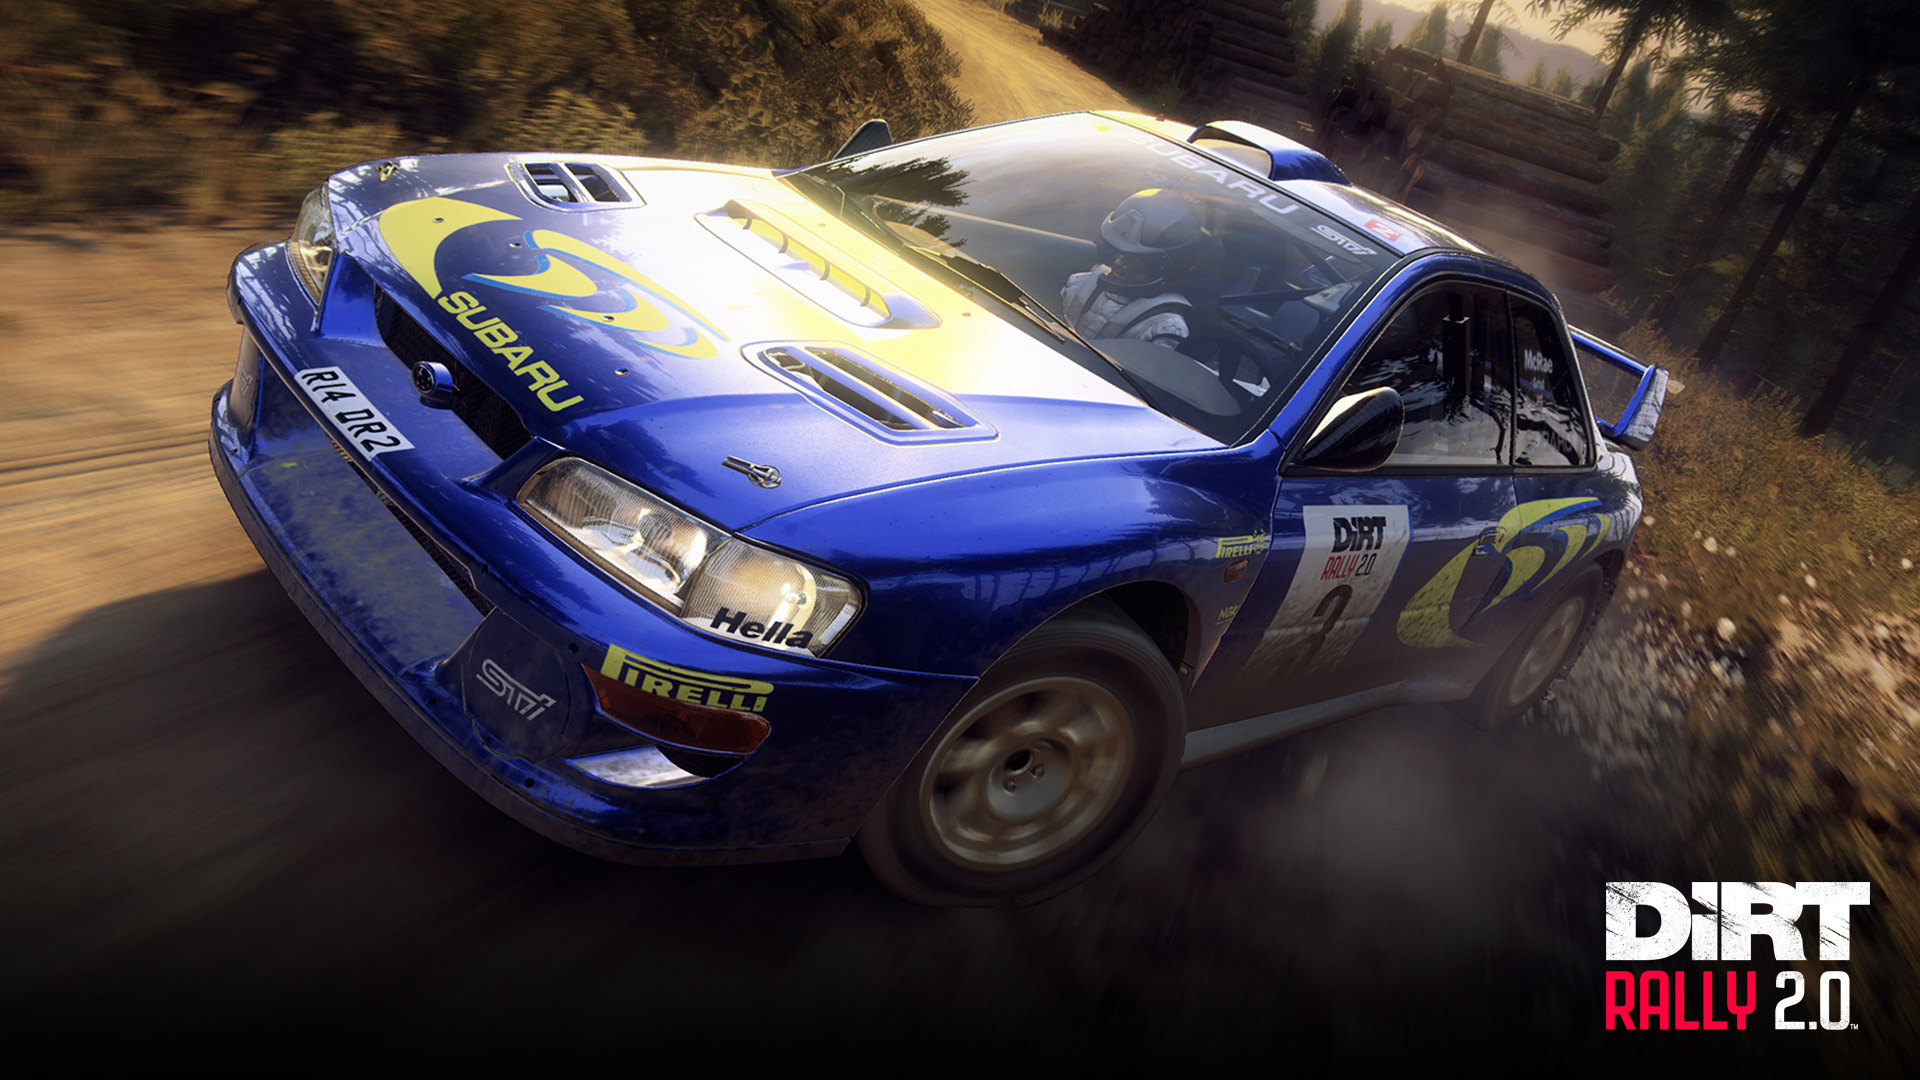 Free Dirt Rally 2.0 Wallpaper in 1920x1080